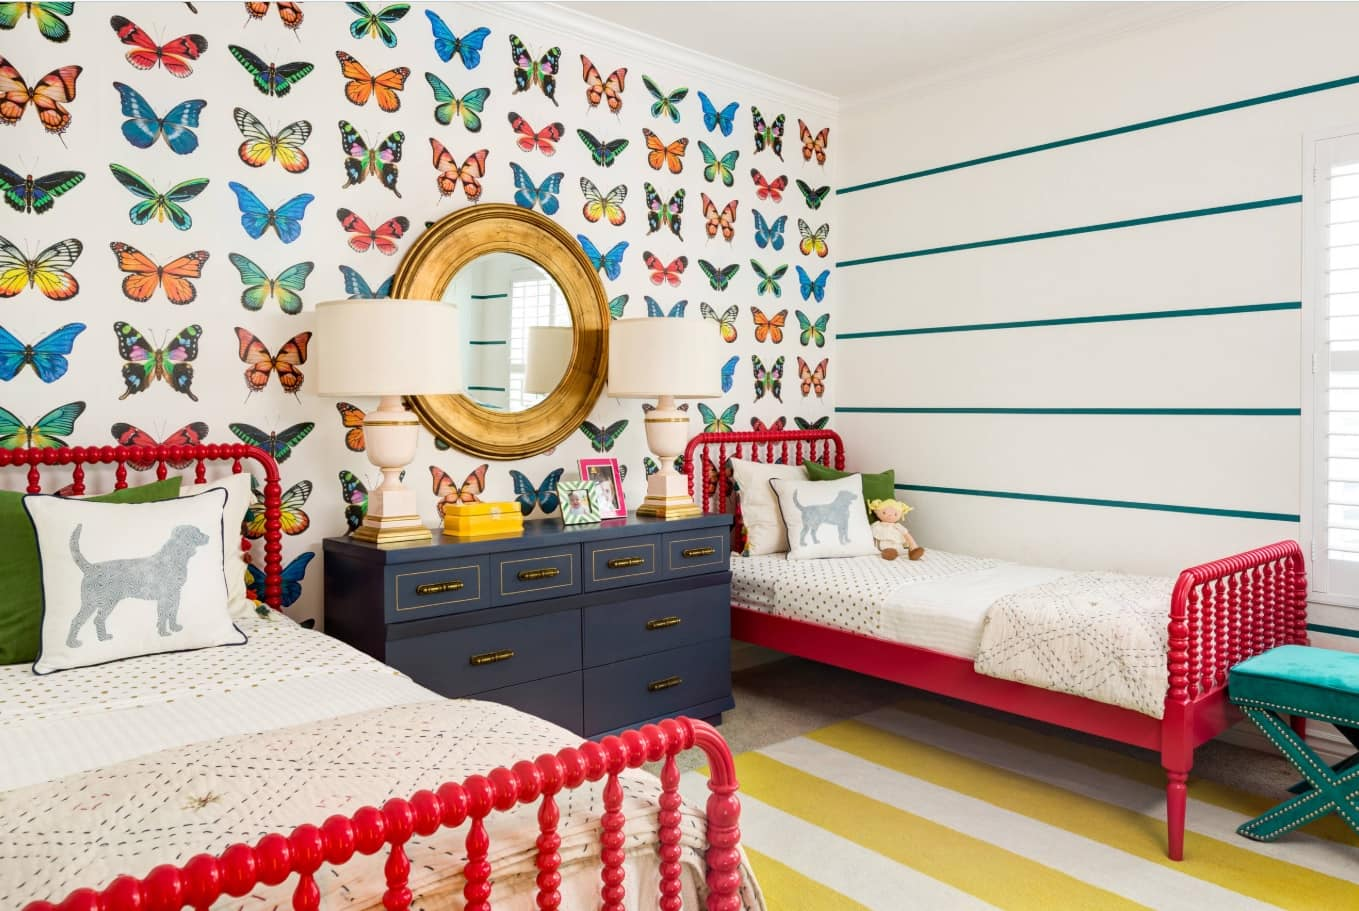 Kids Room Paint Creative Design Ideas. Colorful butterflies at the wall of Classic styled room with red frames of beds